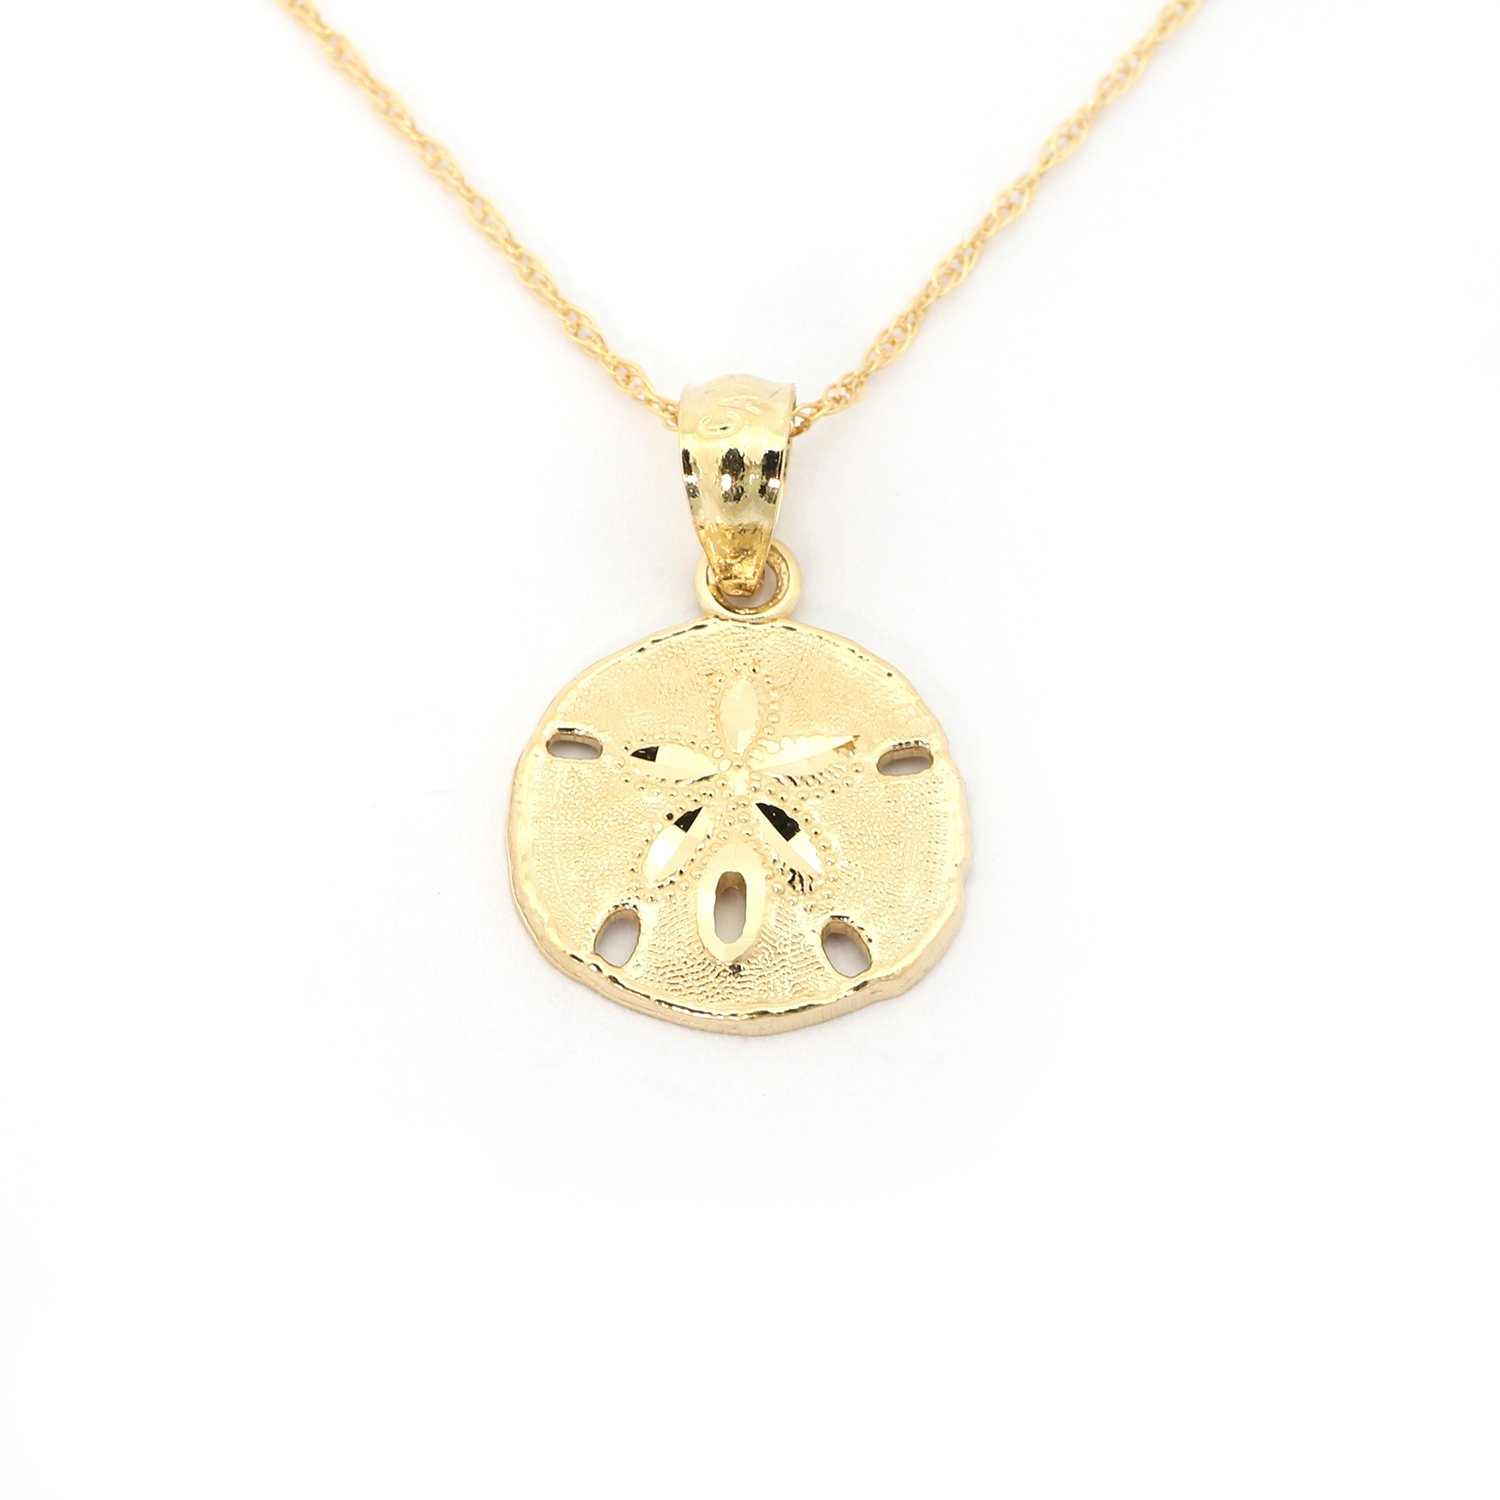 14k Yellow Gold Small Sand Dollar Pendant Necklace, 20 inches